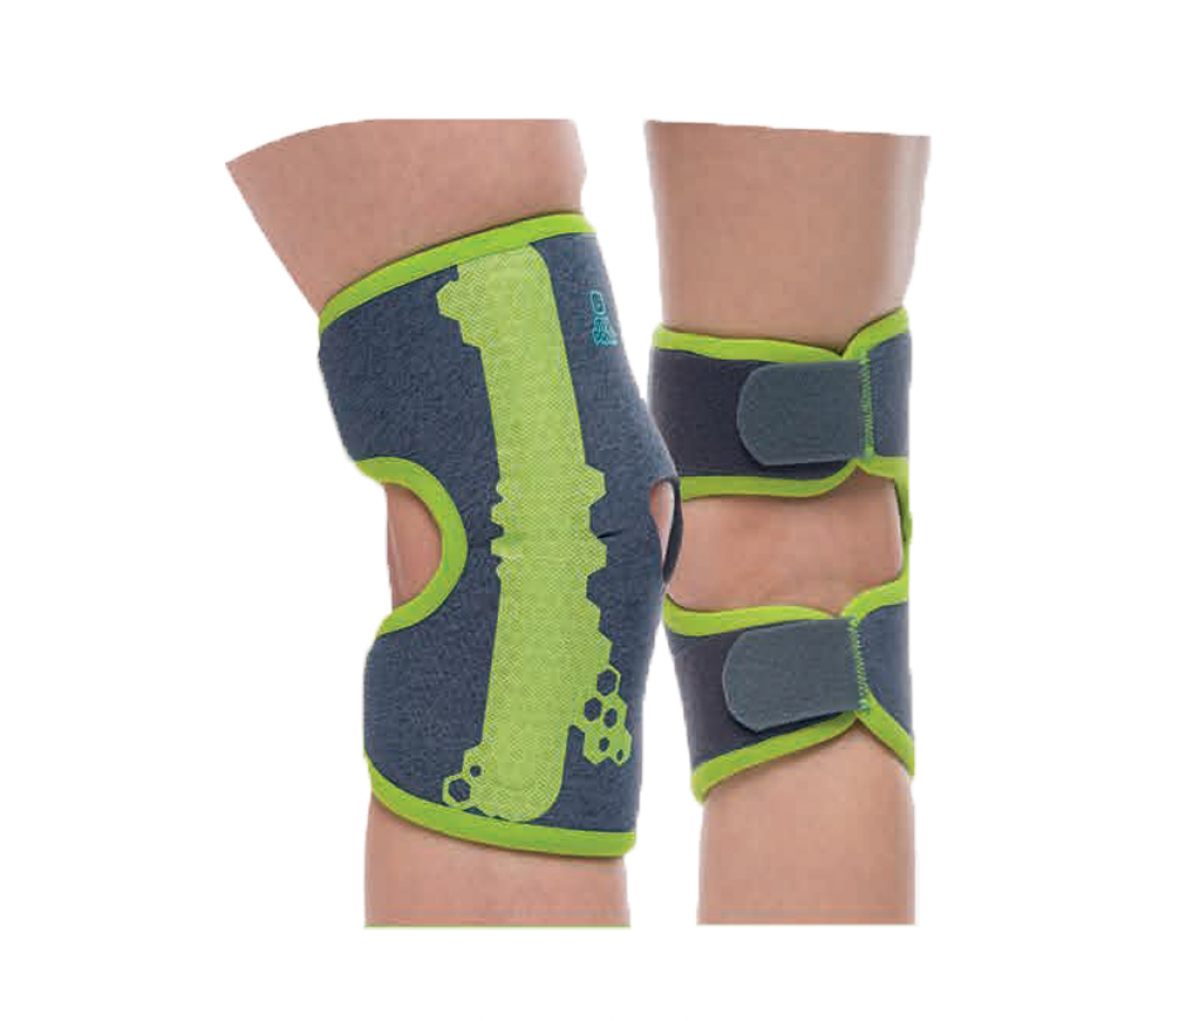 KNEE SUPPORT WITH PATELLA PAD AND STAYS - T2 MPK700